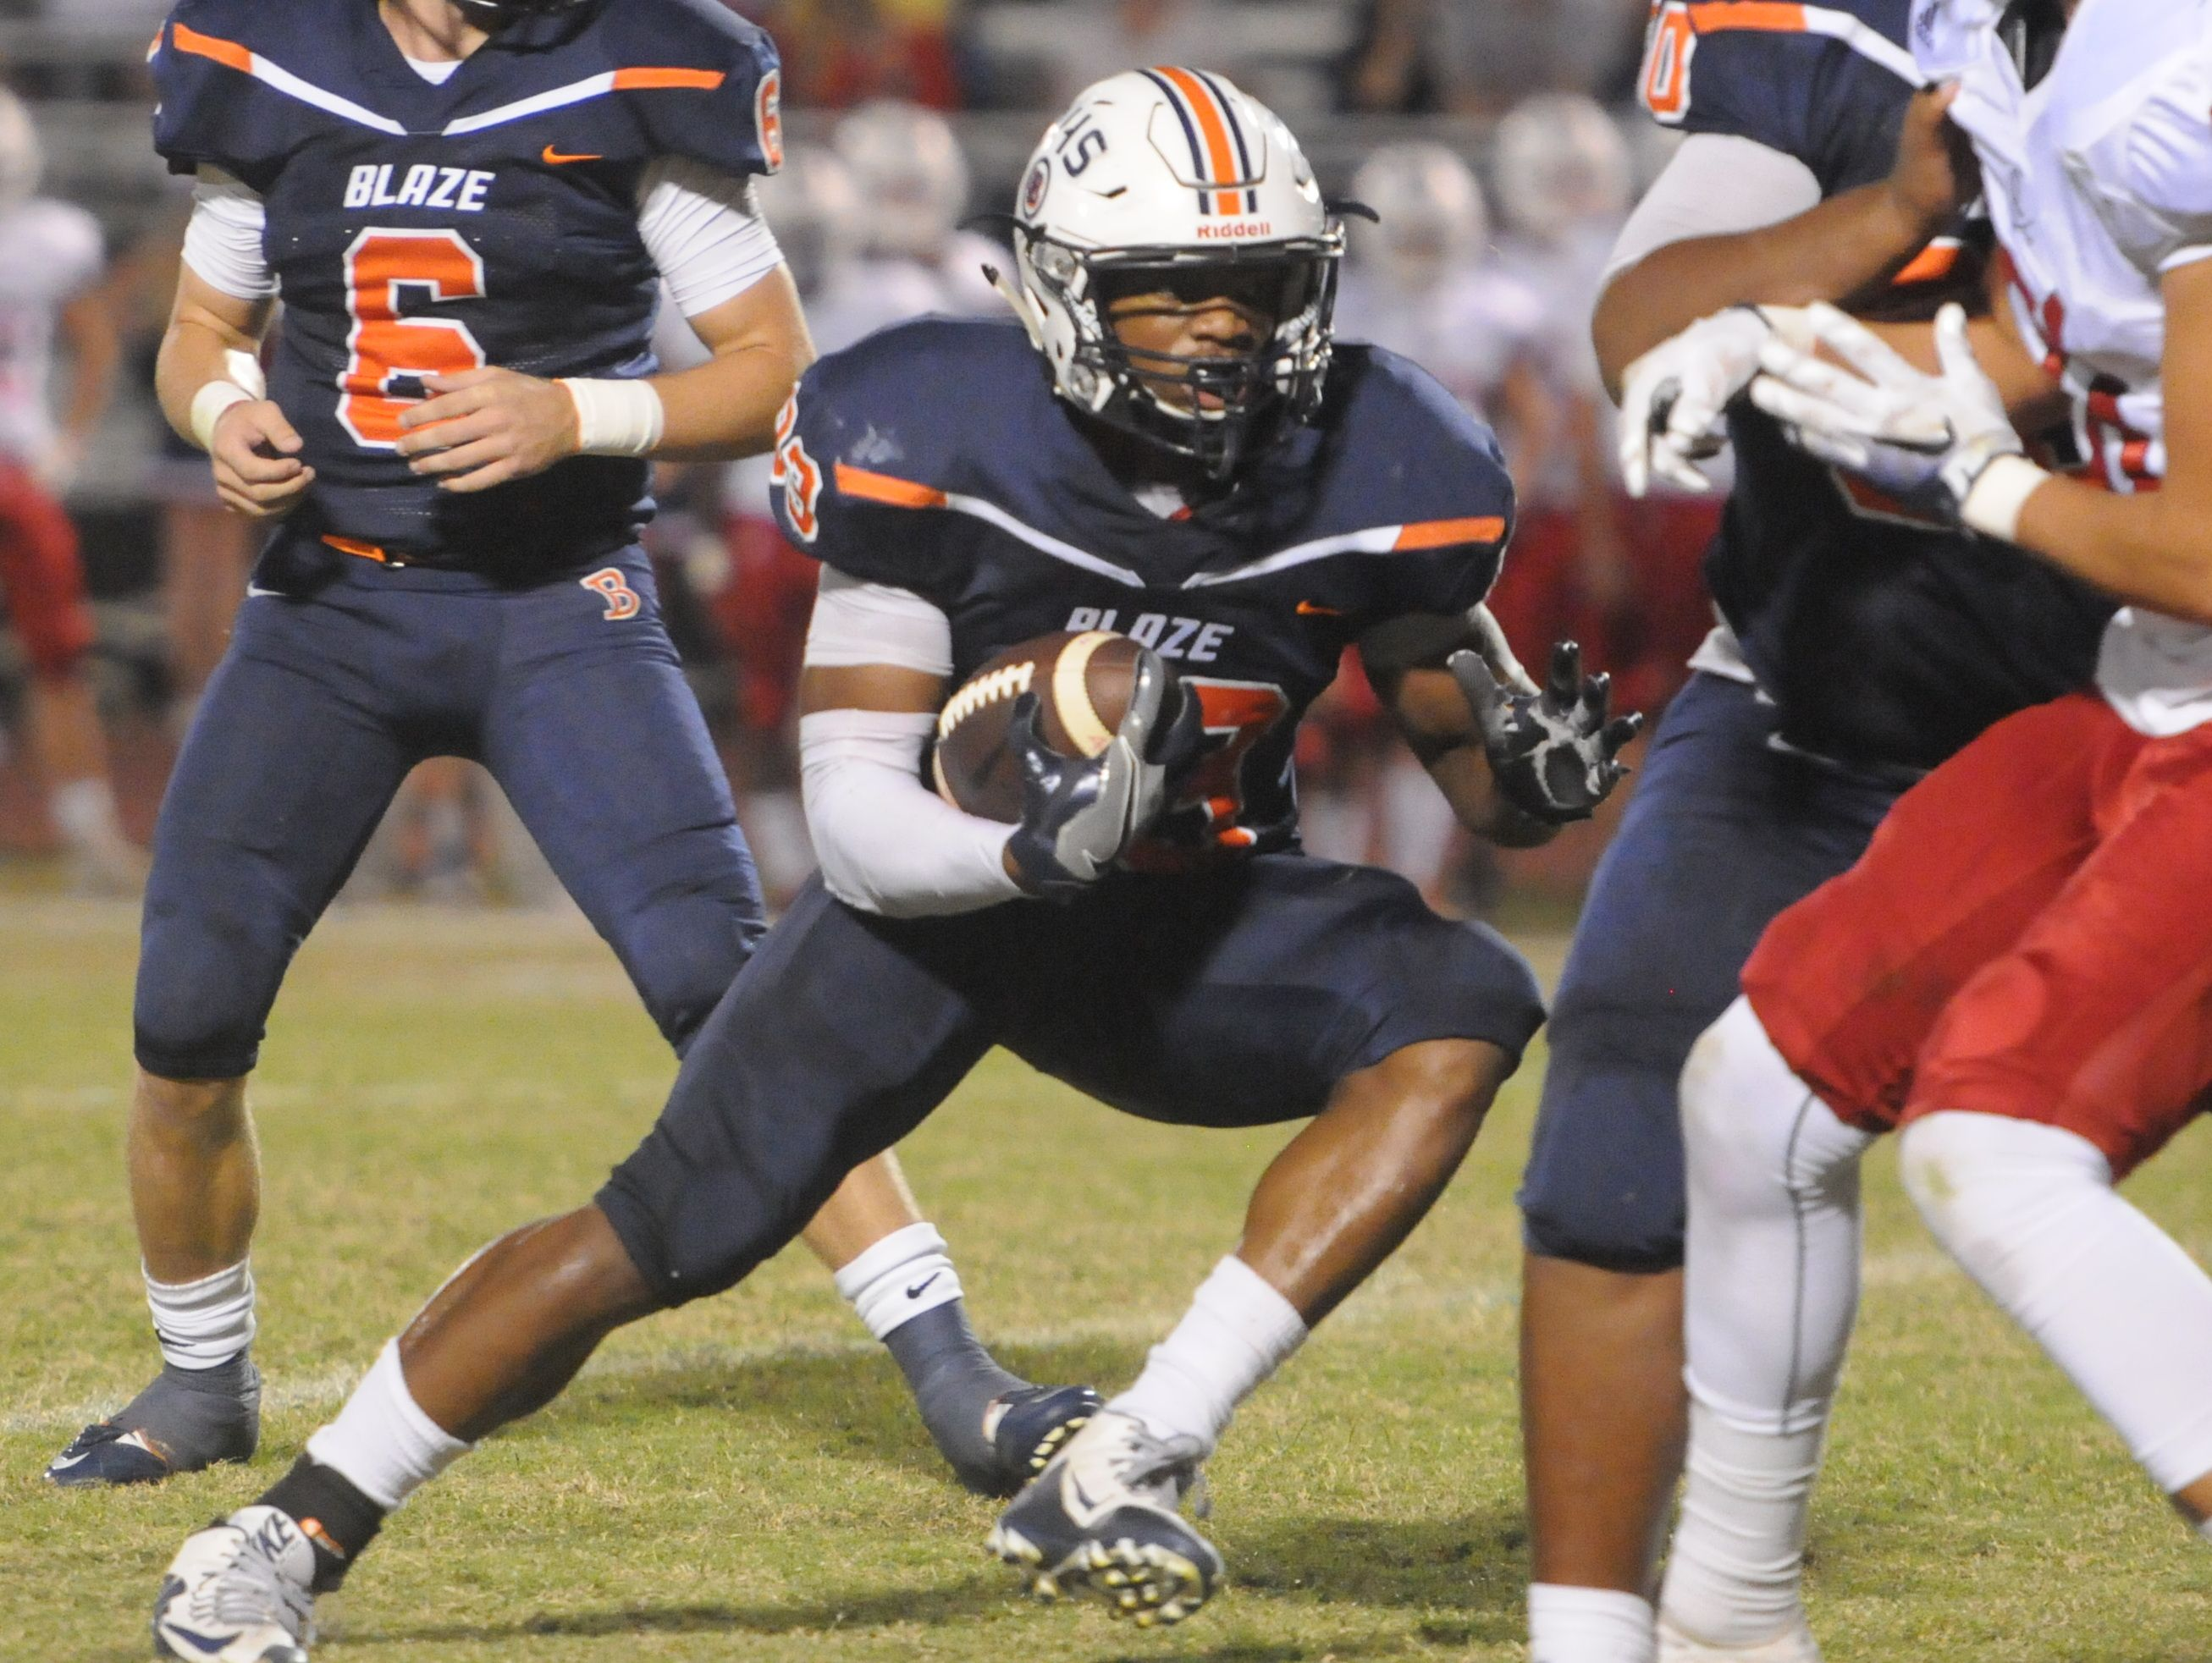 Blackman's Master Teague ran 332 yards and three touchdowns in Friday's win over Cookeville.